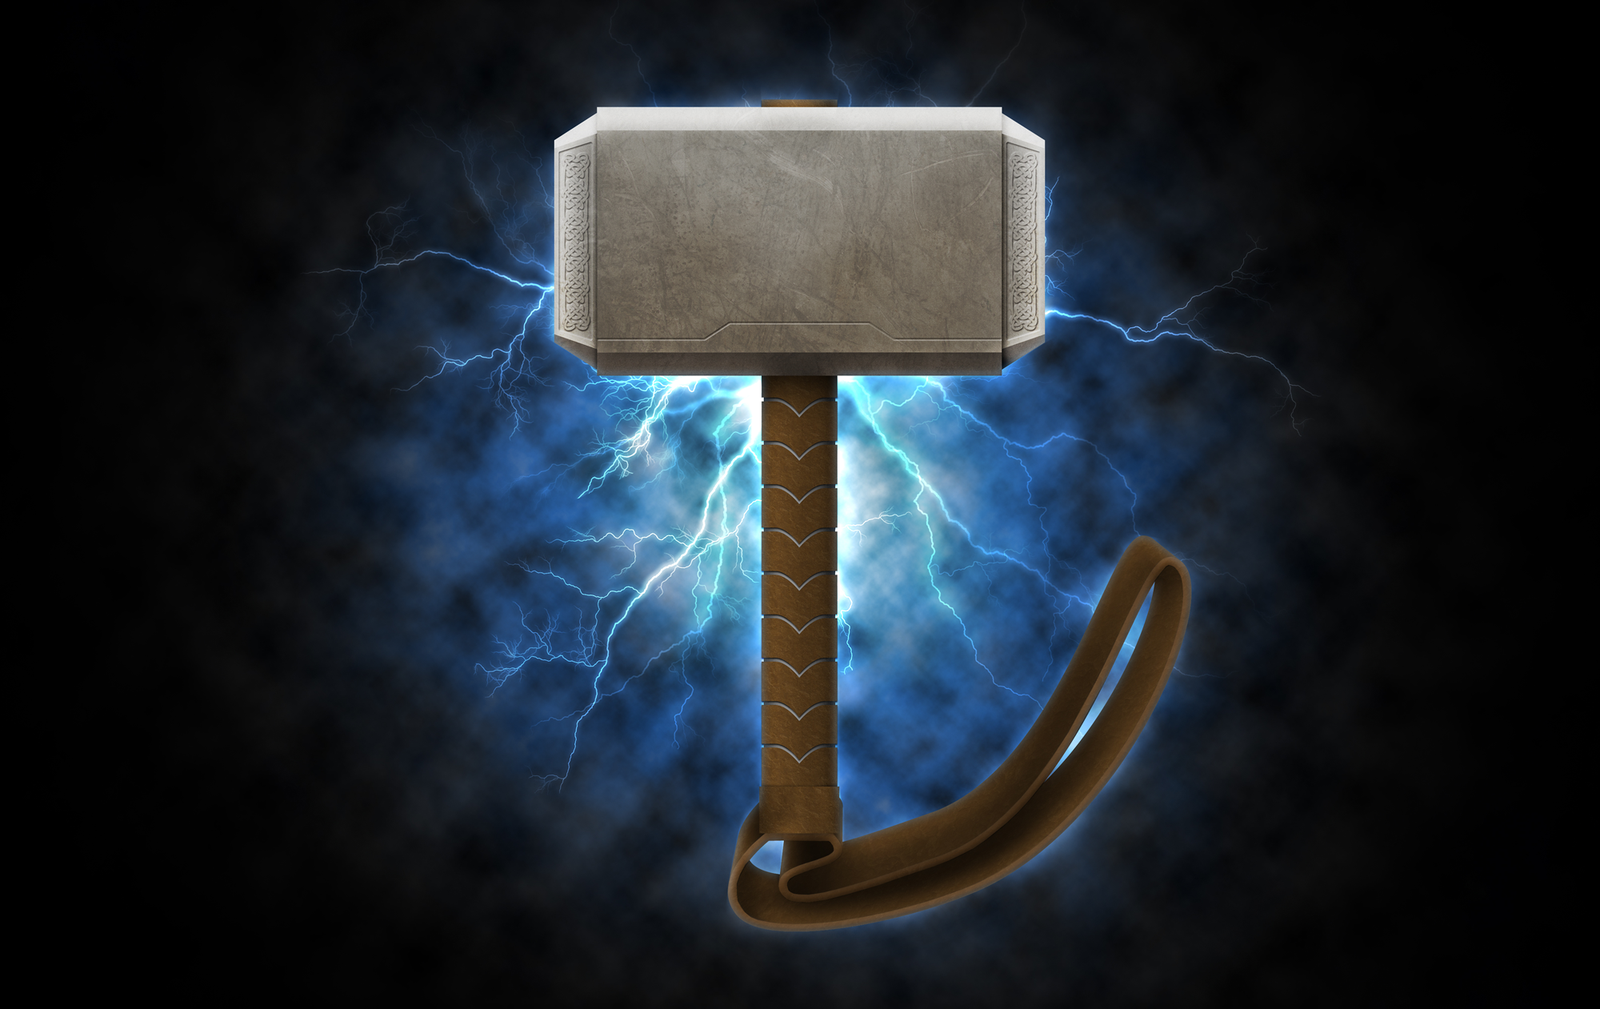 thor 39 s hammer wallpaper wallpapersafari